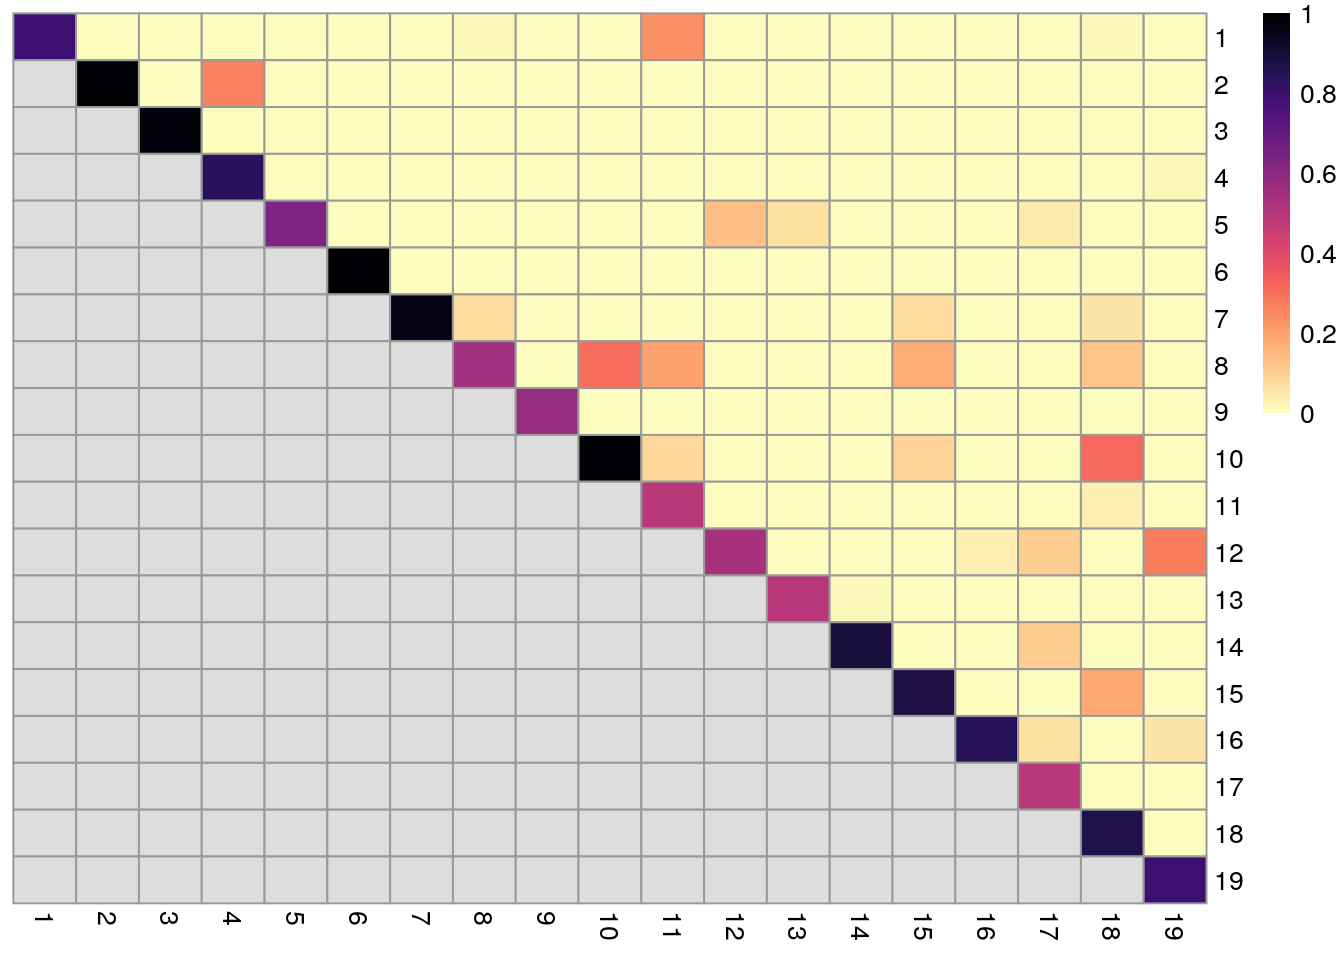 Heatmap of coassignment probabilities from bootstrapping of graph-based clustering in the PBMC dataset. Each row and column represents an original cluster and each entry is colored according to the value of the coassignment probability between that pair of clusters.